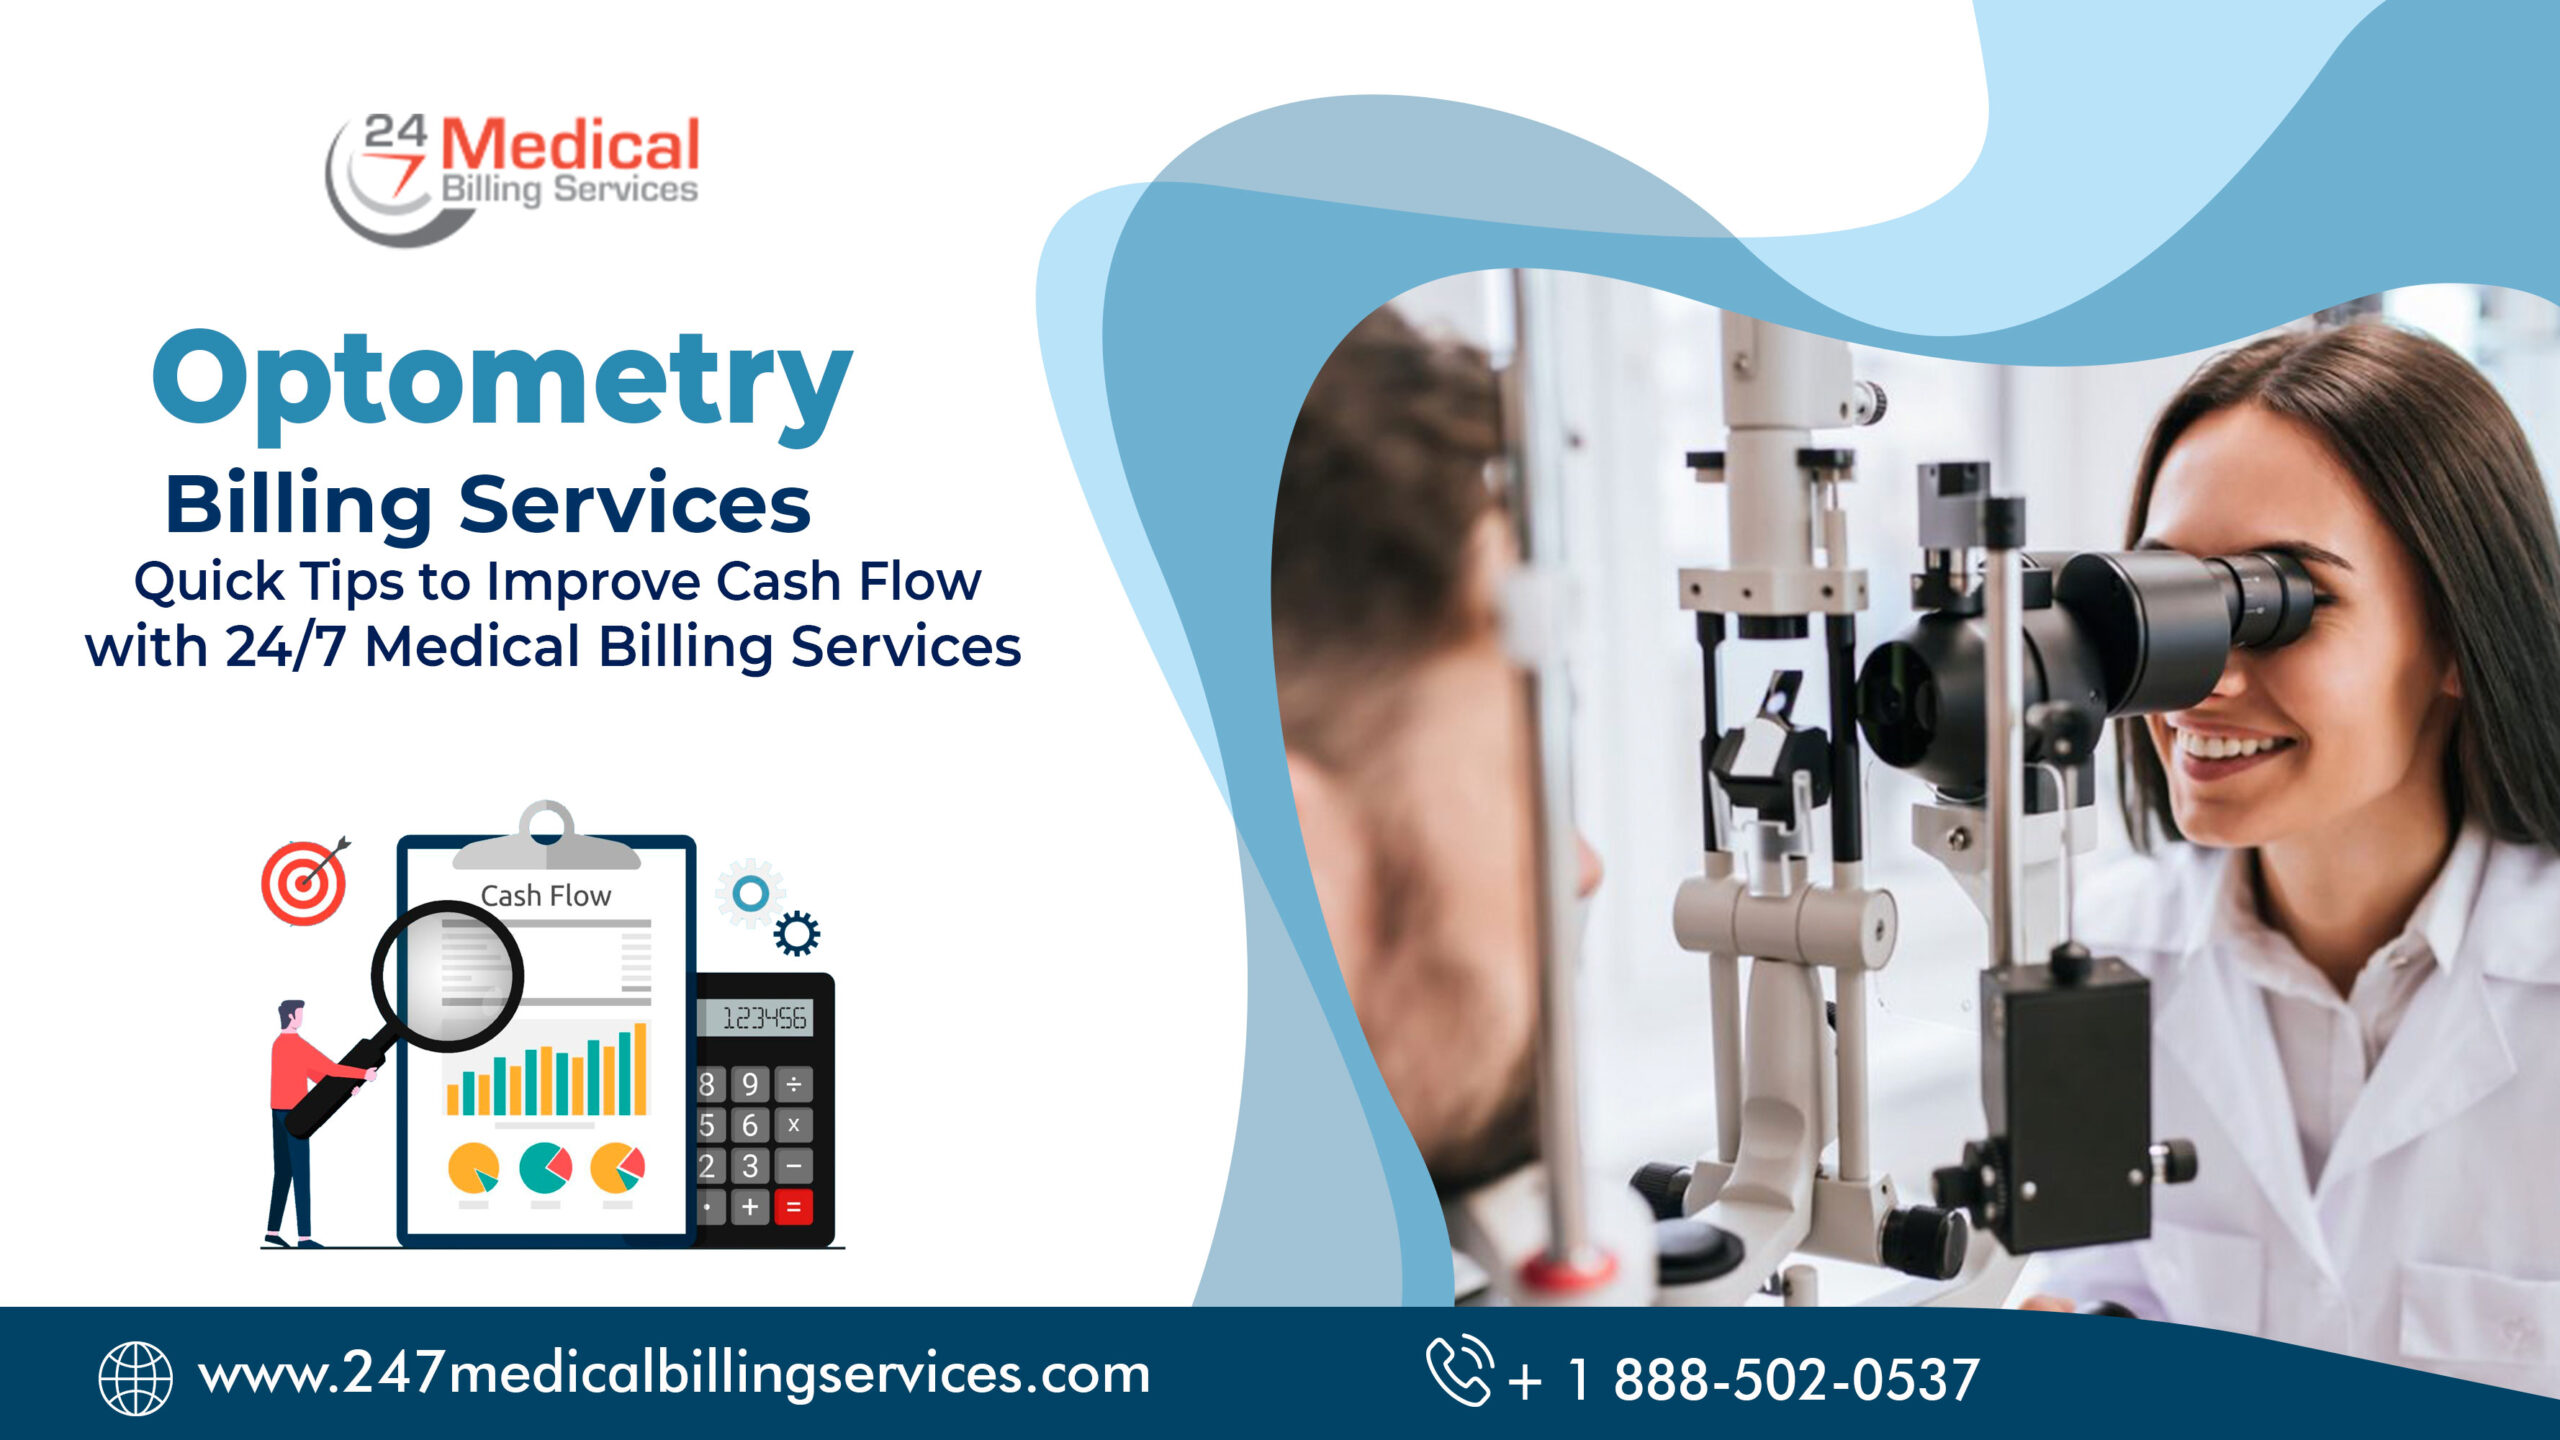 Optometry Billing Services – Quick Tips to Improve Cash Flow with 24/7 Medical Billing Services